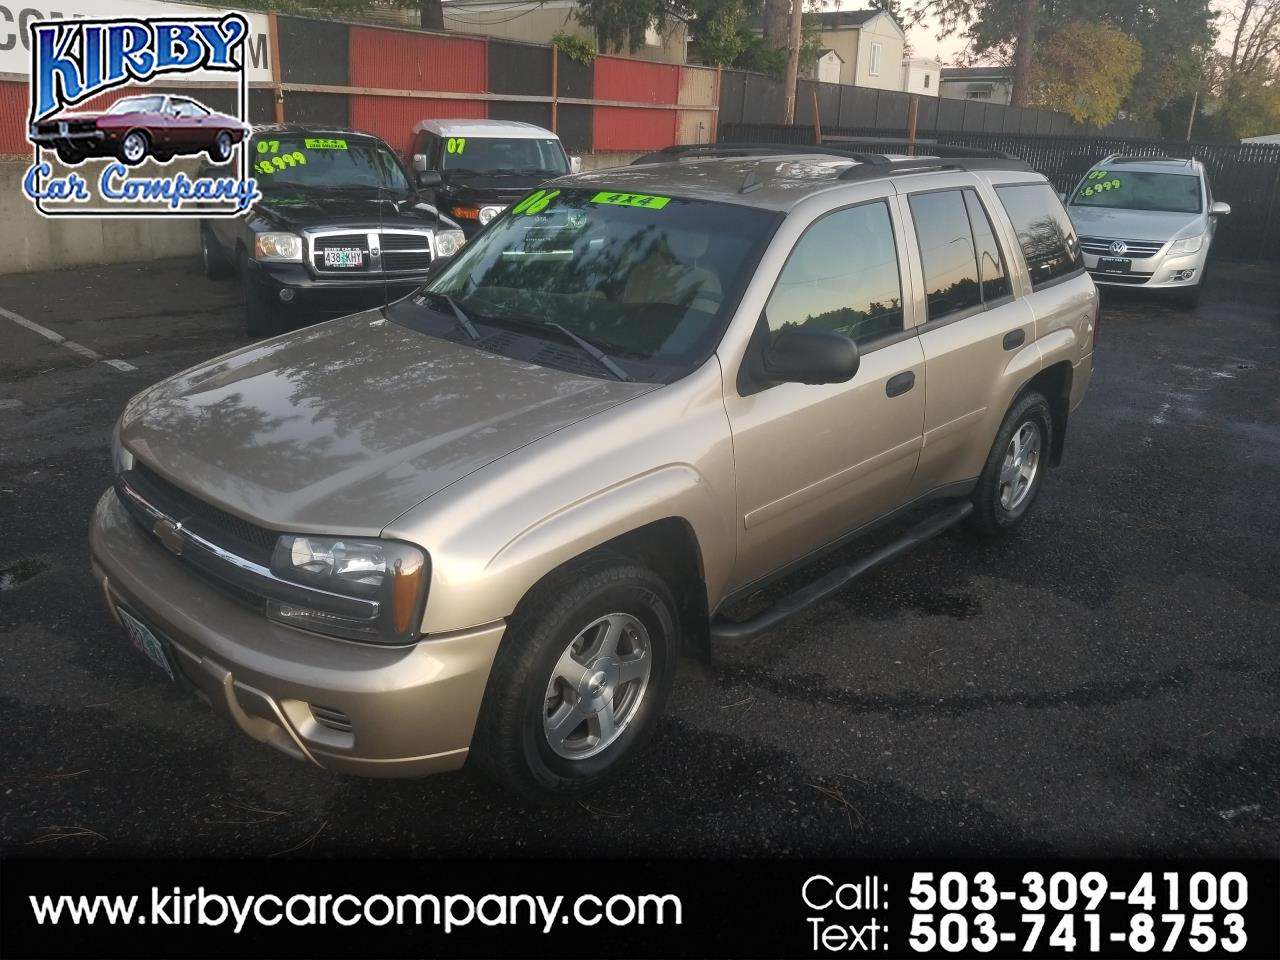 2006 Chevrolet TrailBlazer LS 4WD  PERFECT MAINT RECORDS!!  SPOTLESS!!  CLEAN